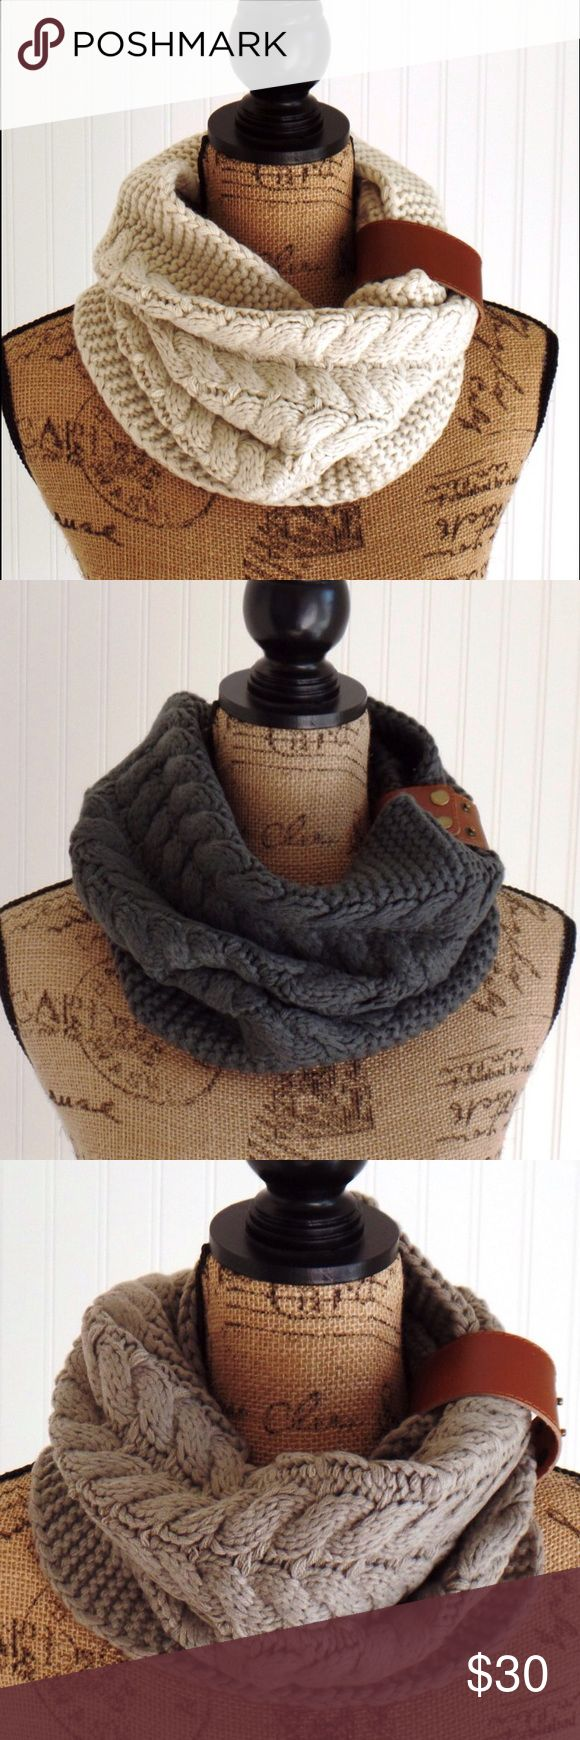 Snood, Knit Snood, Knit Scarf, Winter Scarf Snood Knit snood. Women's or girls knit snood scarf. Uptown Girl Co Accessories Scarves & Wraps